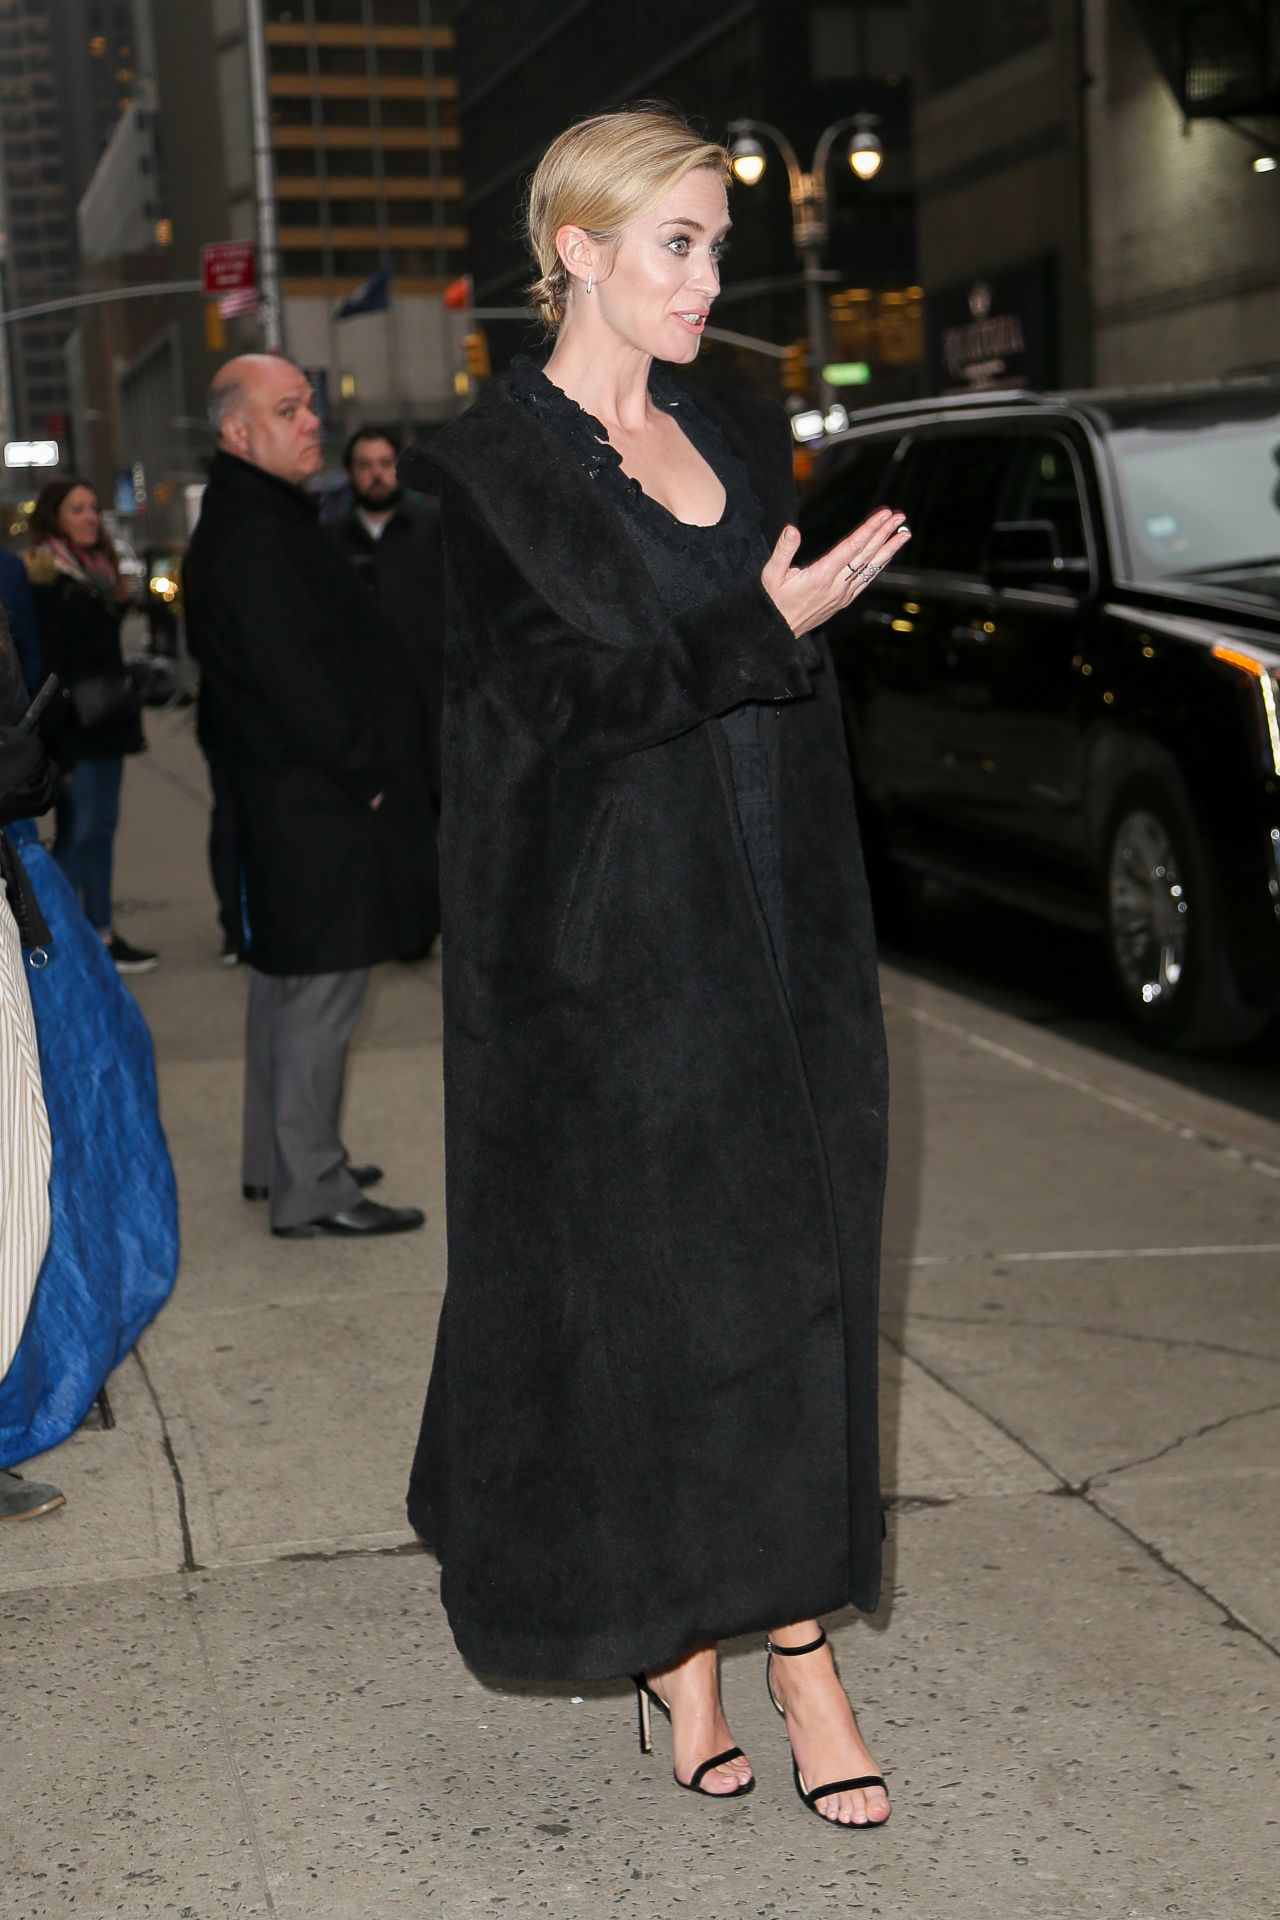 emily-blunt-outside-the-late-show-with-stephen-colbert-in-nyc-03-29-2018-6.jpg